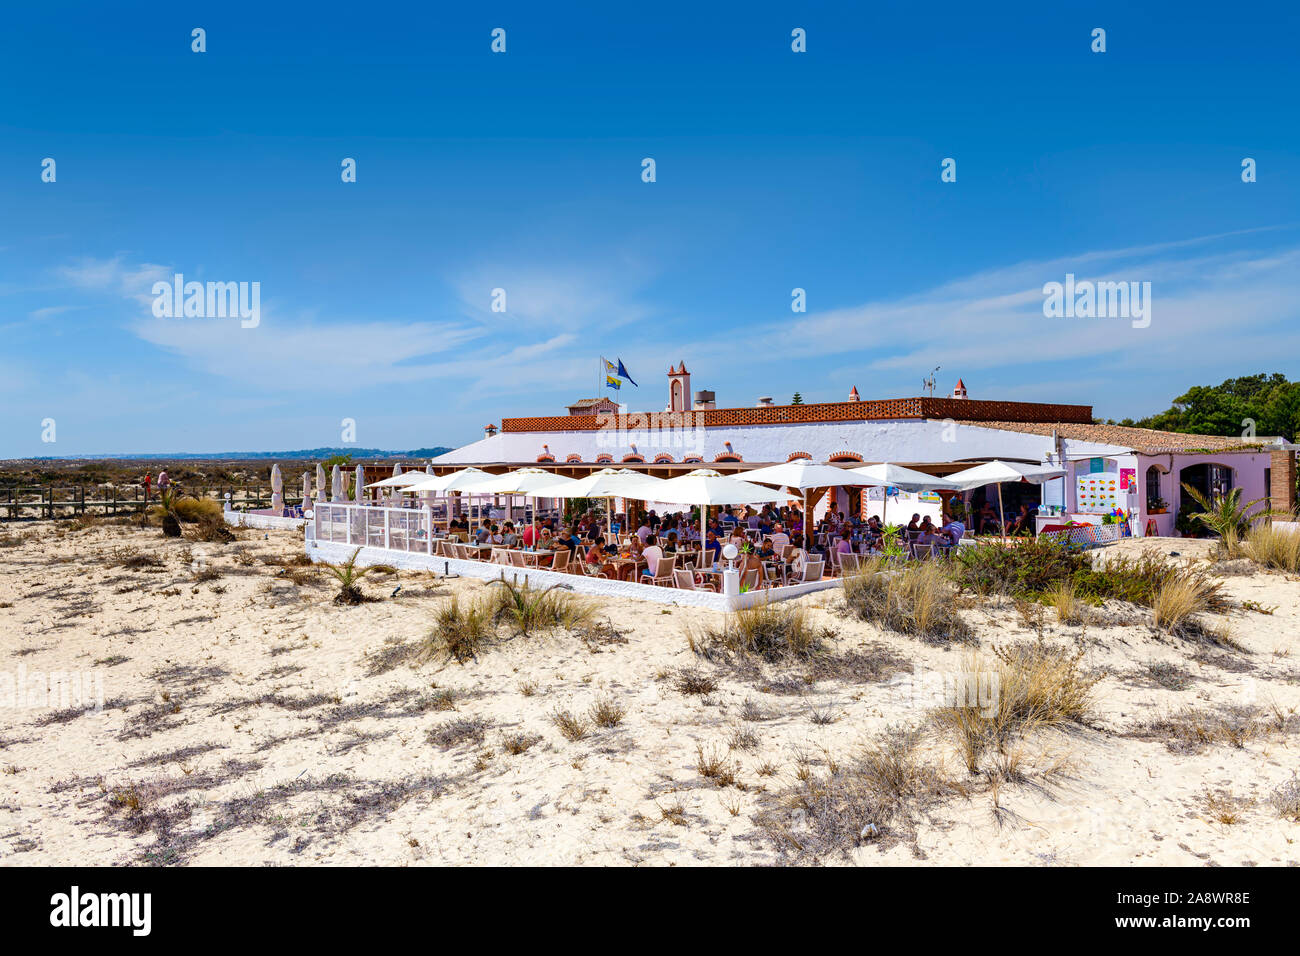 09.16.2019. Algarve, Portugal. The restaurant at Barril beach. Santa Luzia Stock Photo